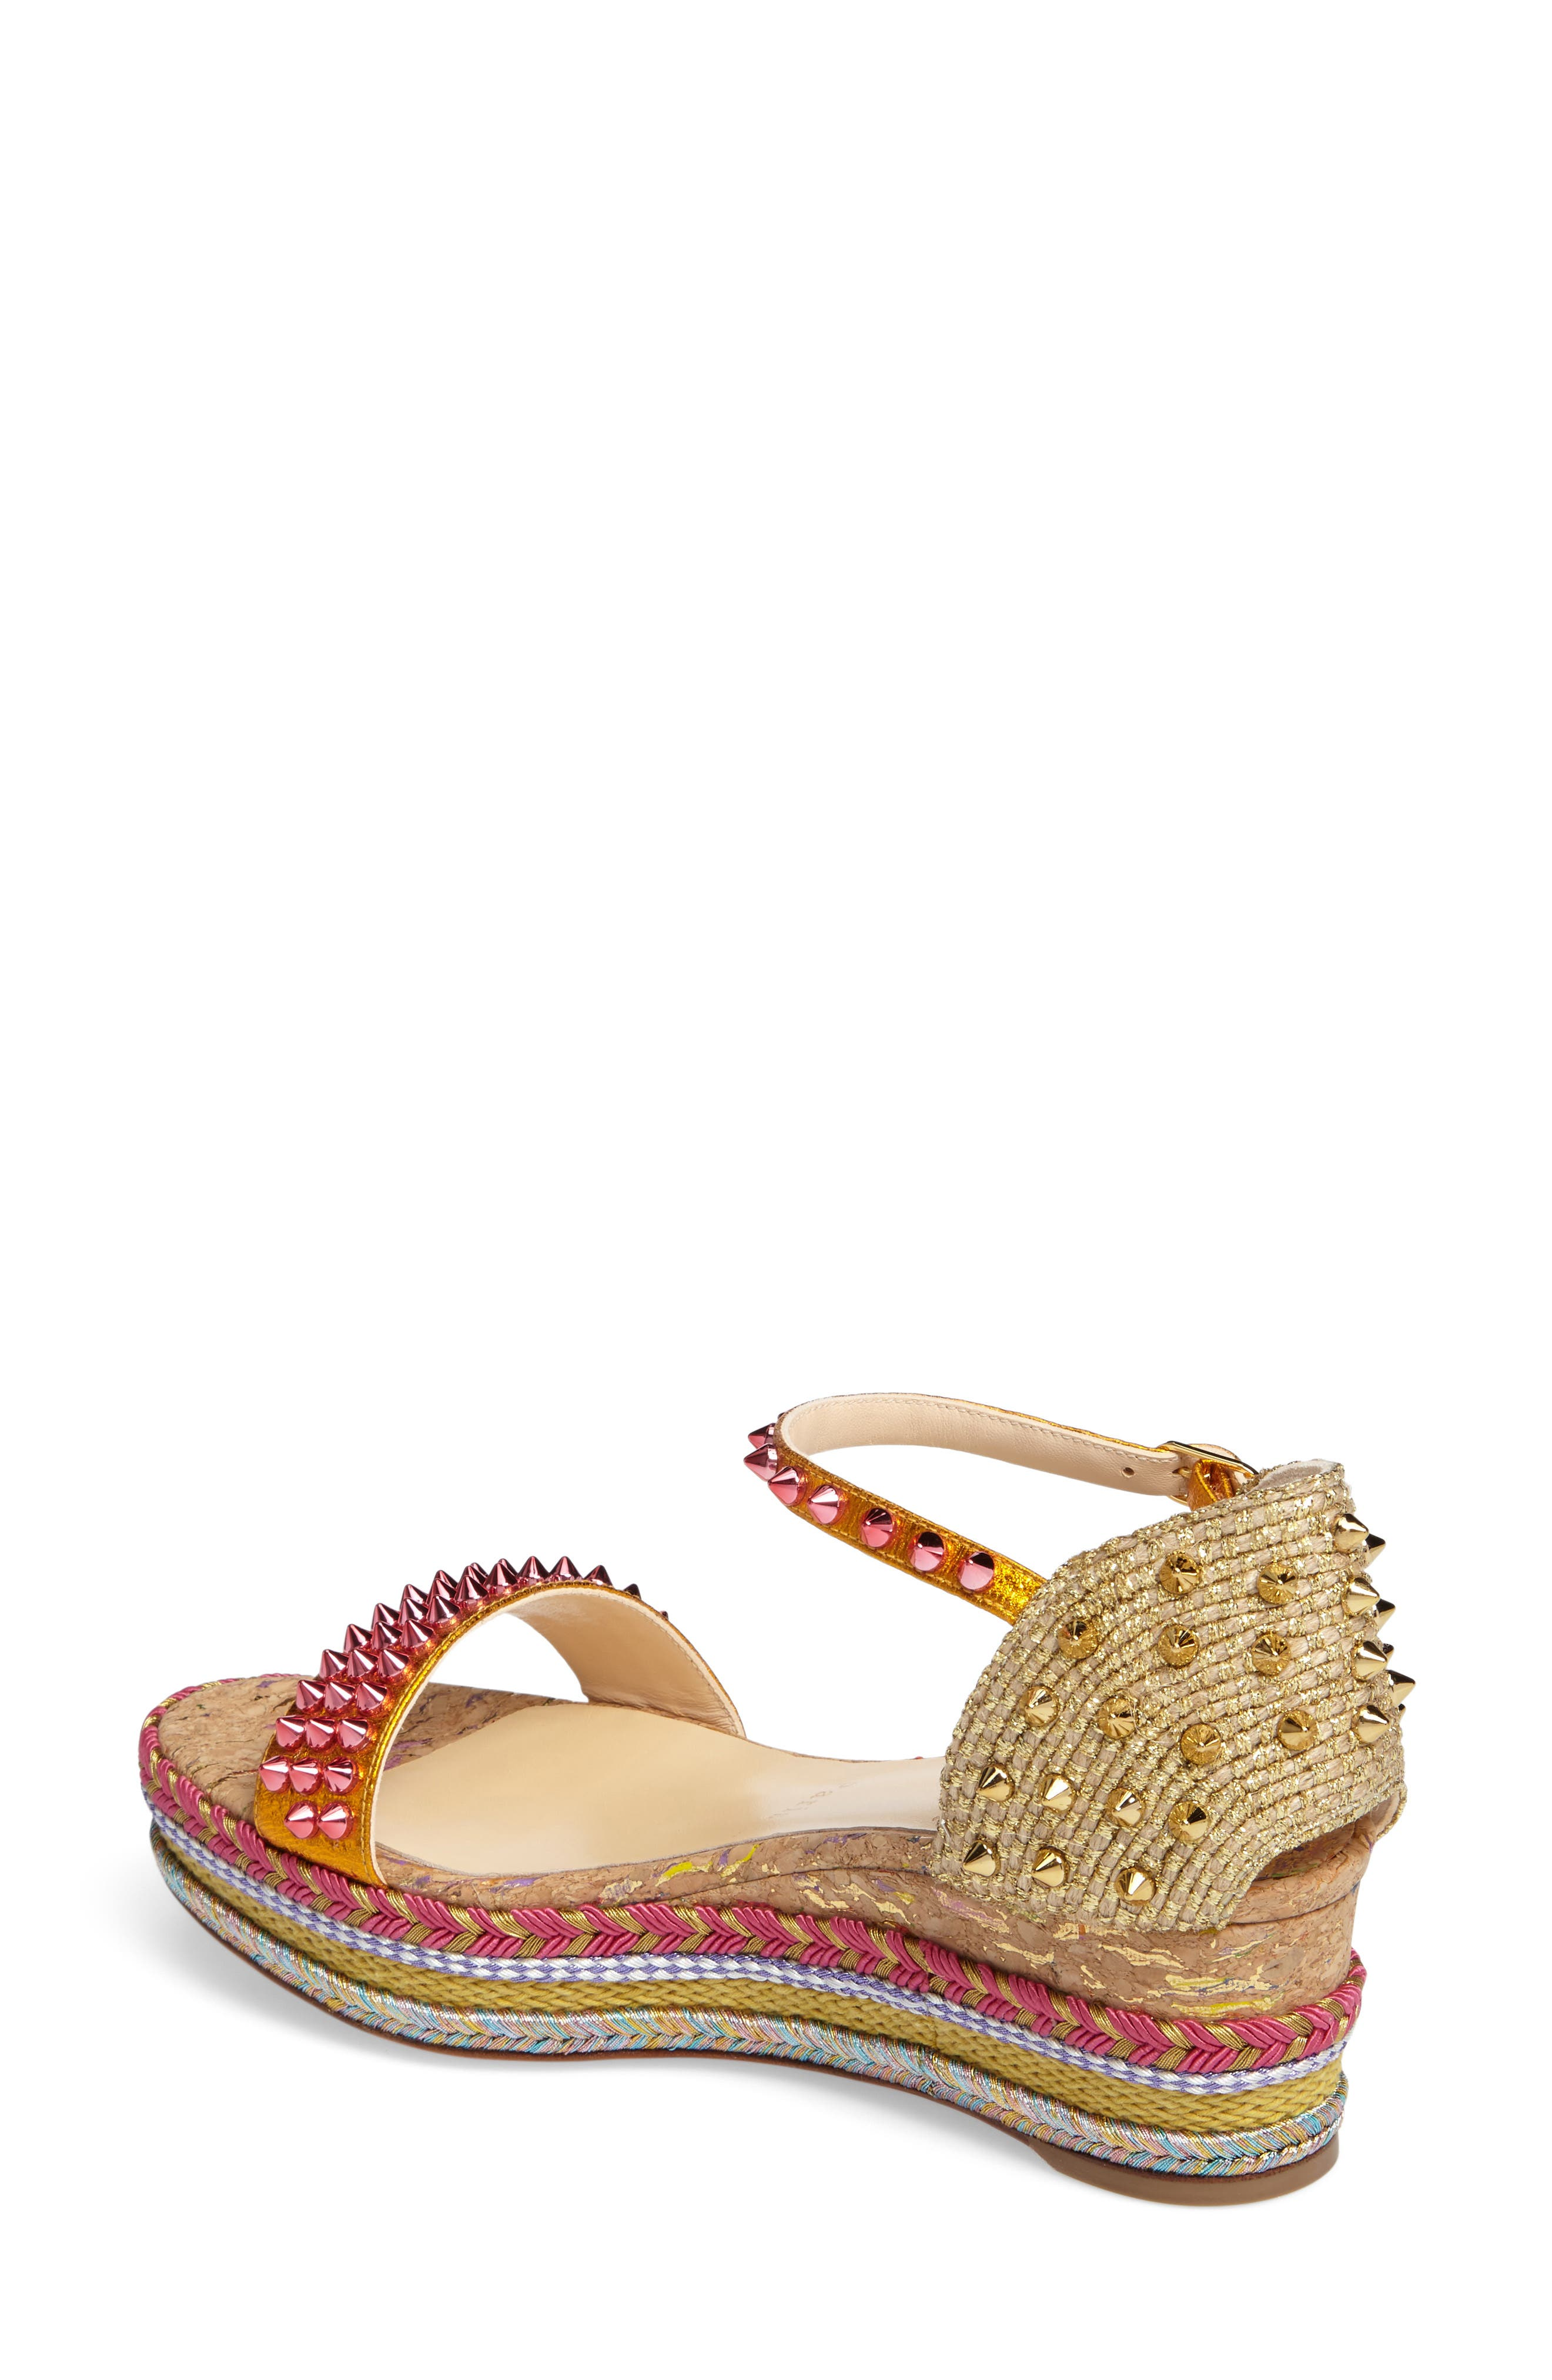 Madmonica Espadrille Platform Sandal,                             Alternate thumbnail 2, color,                             Orange Multi Leather